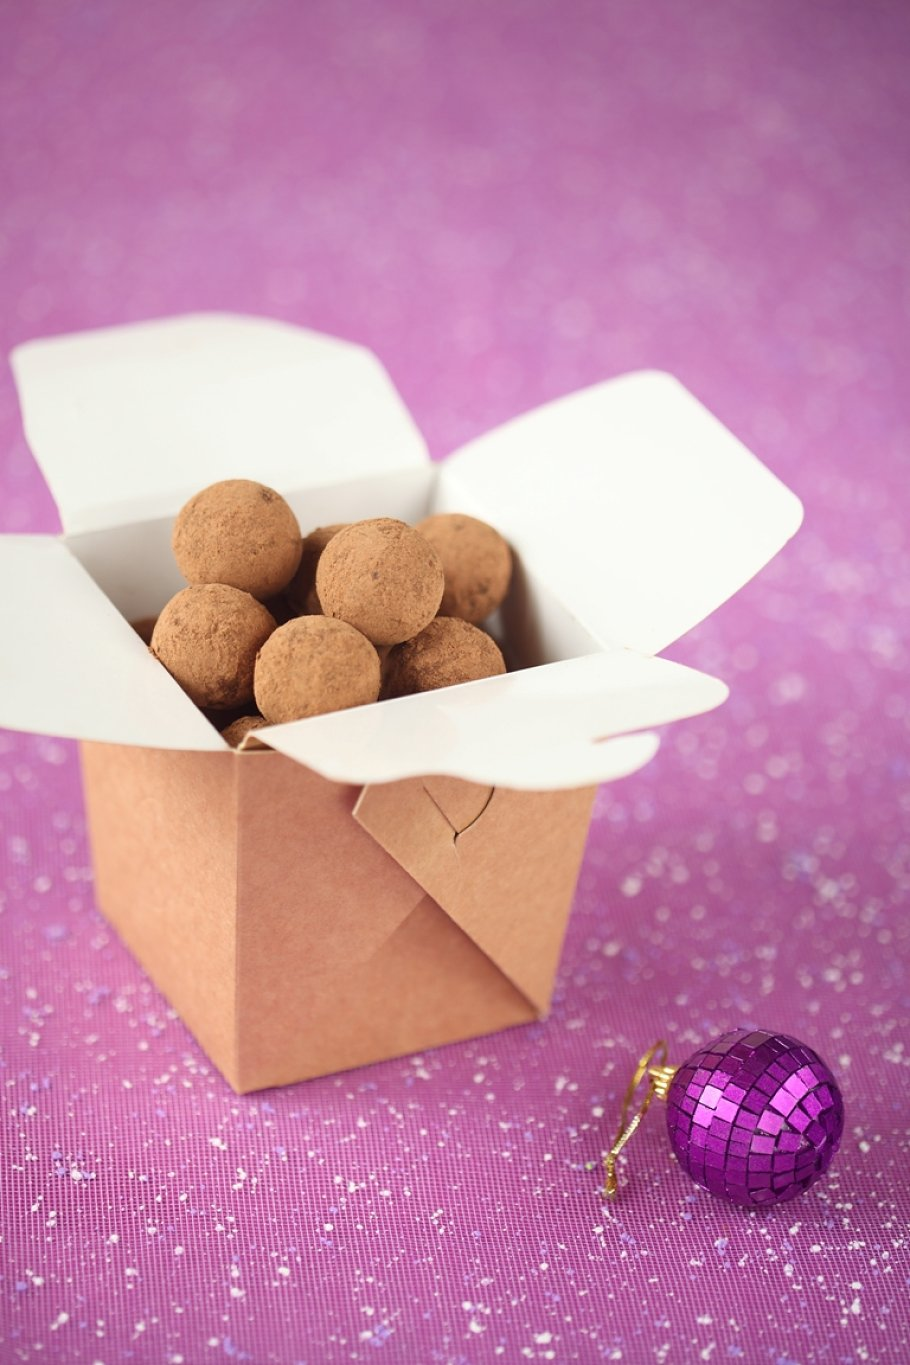 Chocolate Truffles in a brown box ~ Food Images ~ Creative Market